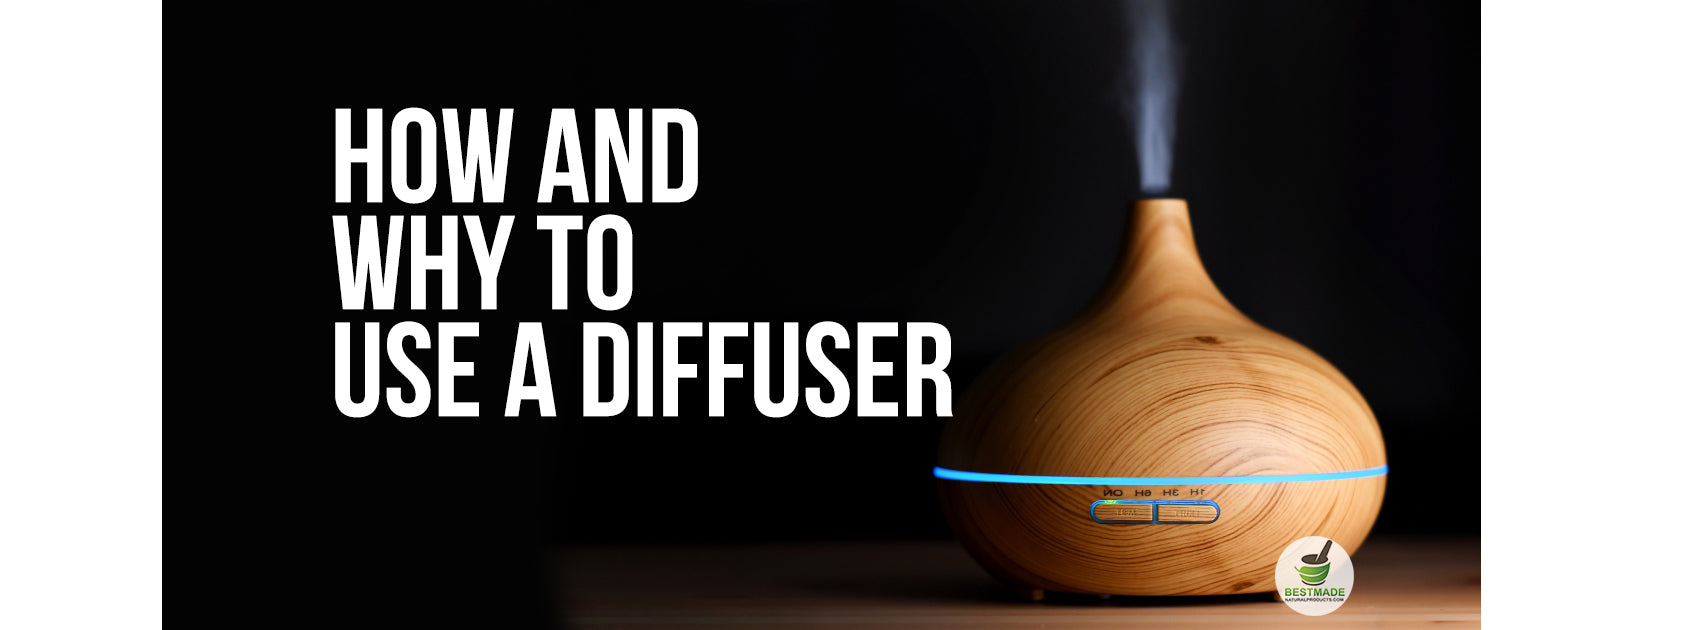 How and Why to Use a Diffuser